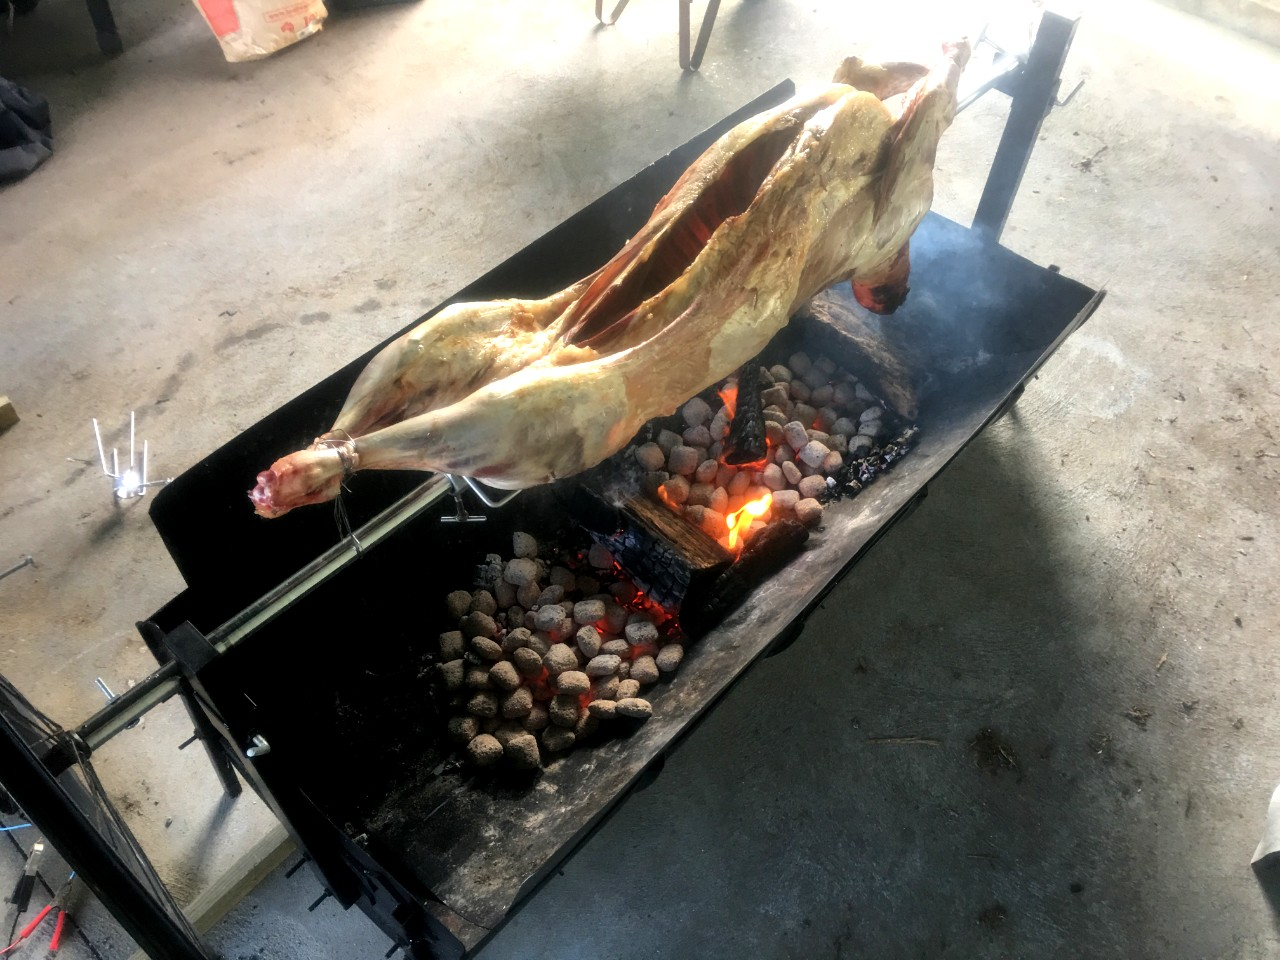 whole beast cooked on barbecue spit